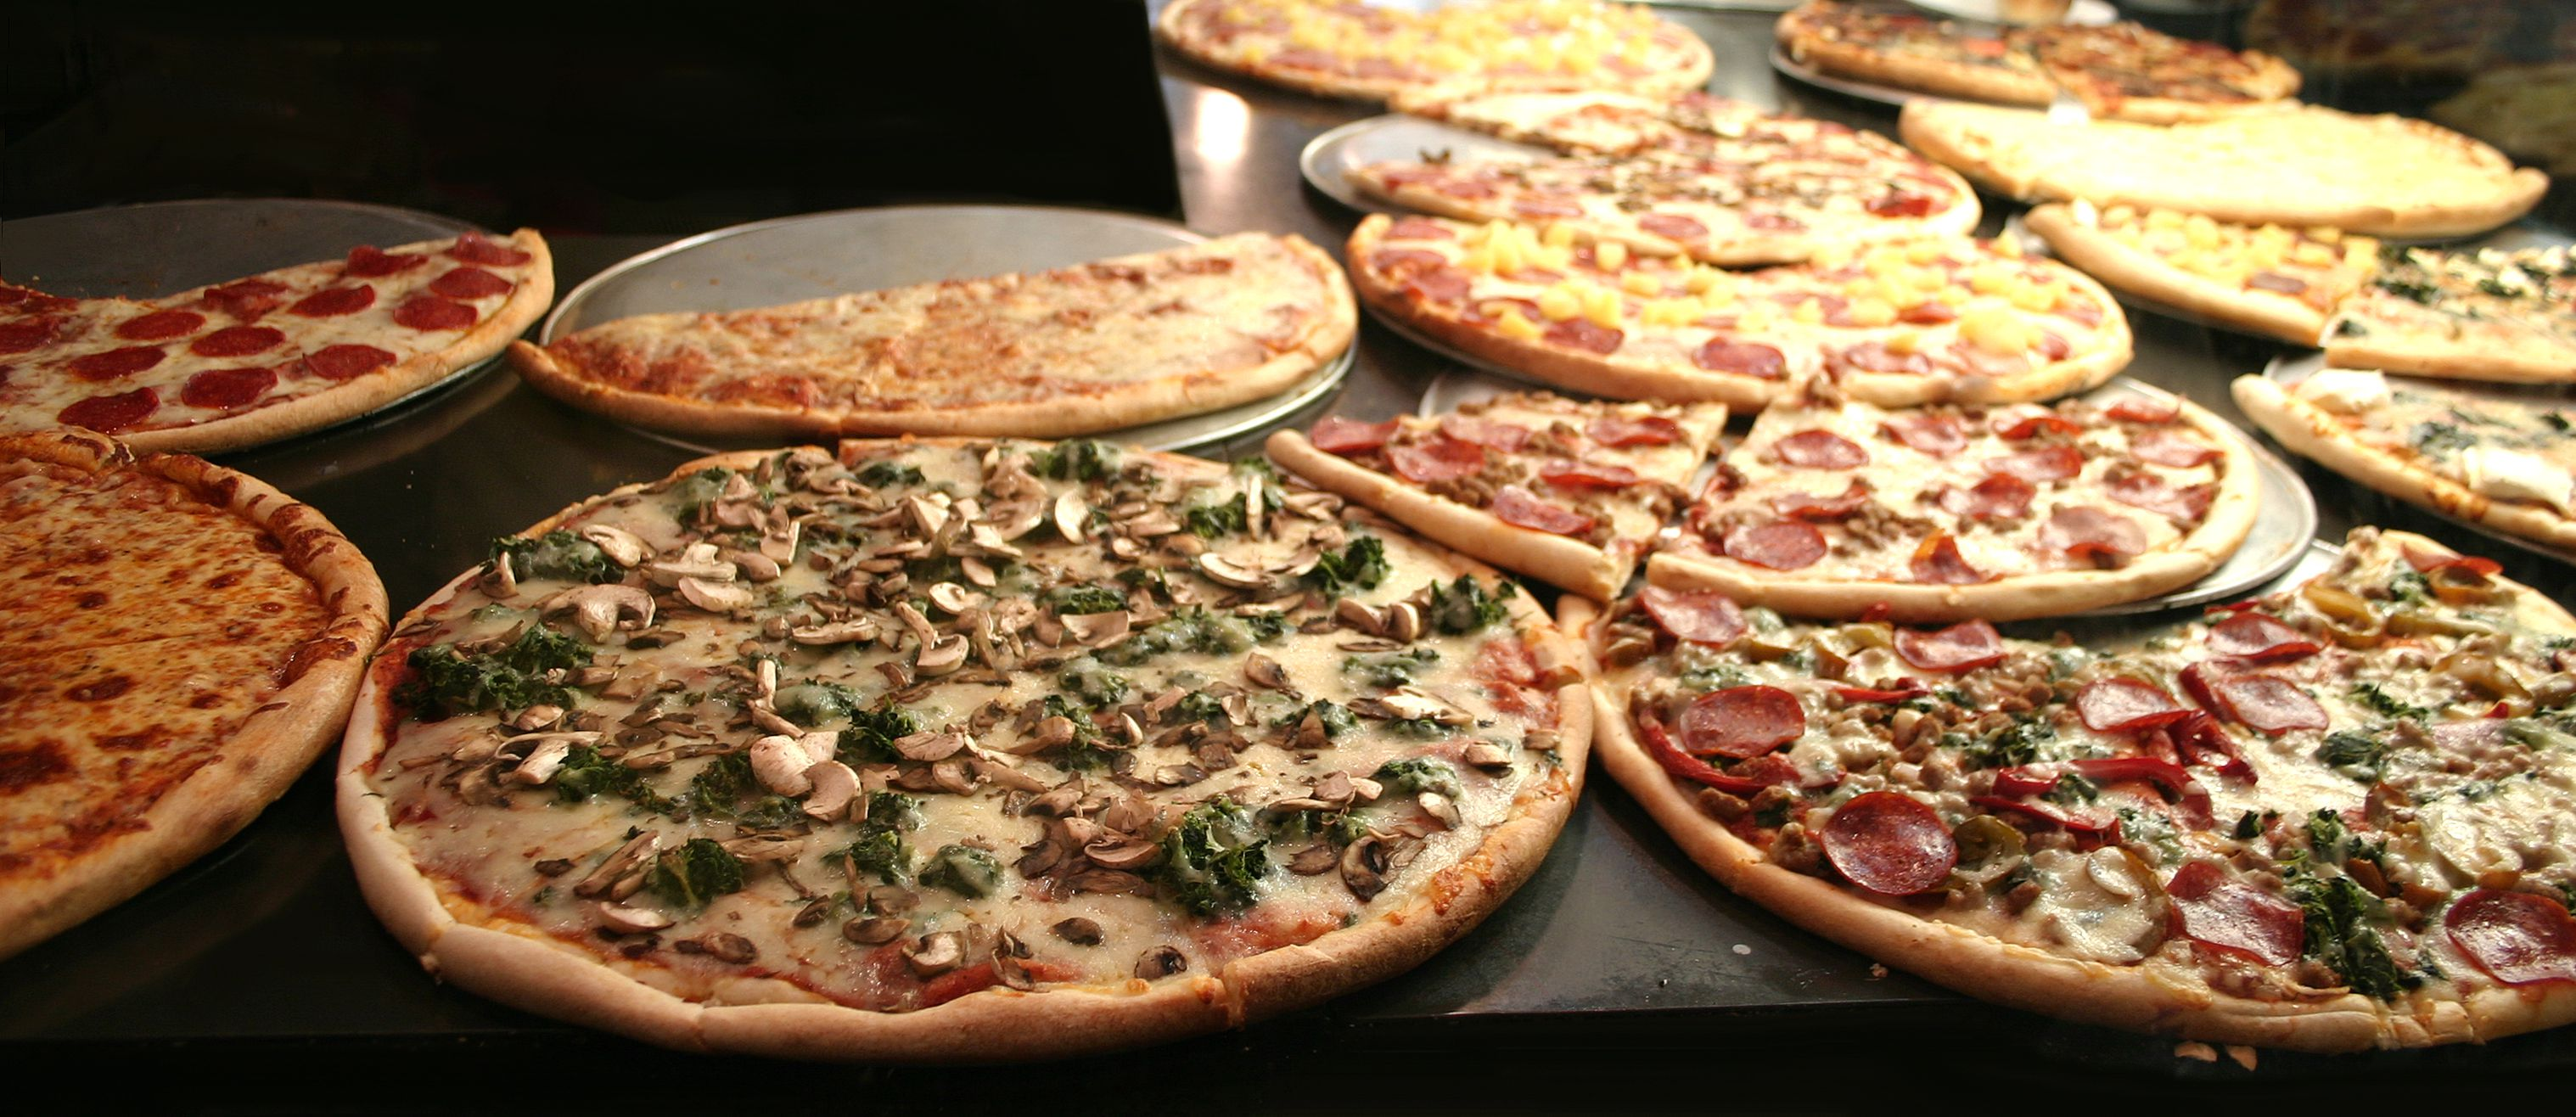 What Is New York-Style Pizza? Learn About This Famous Pizza Style